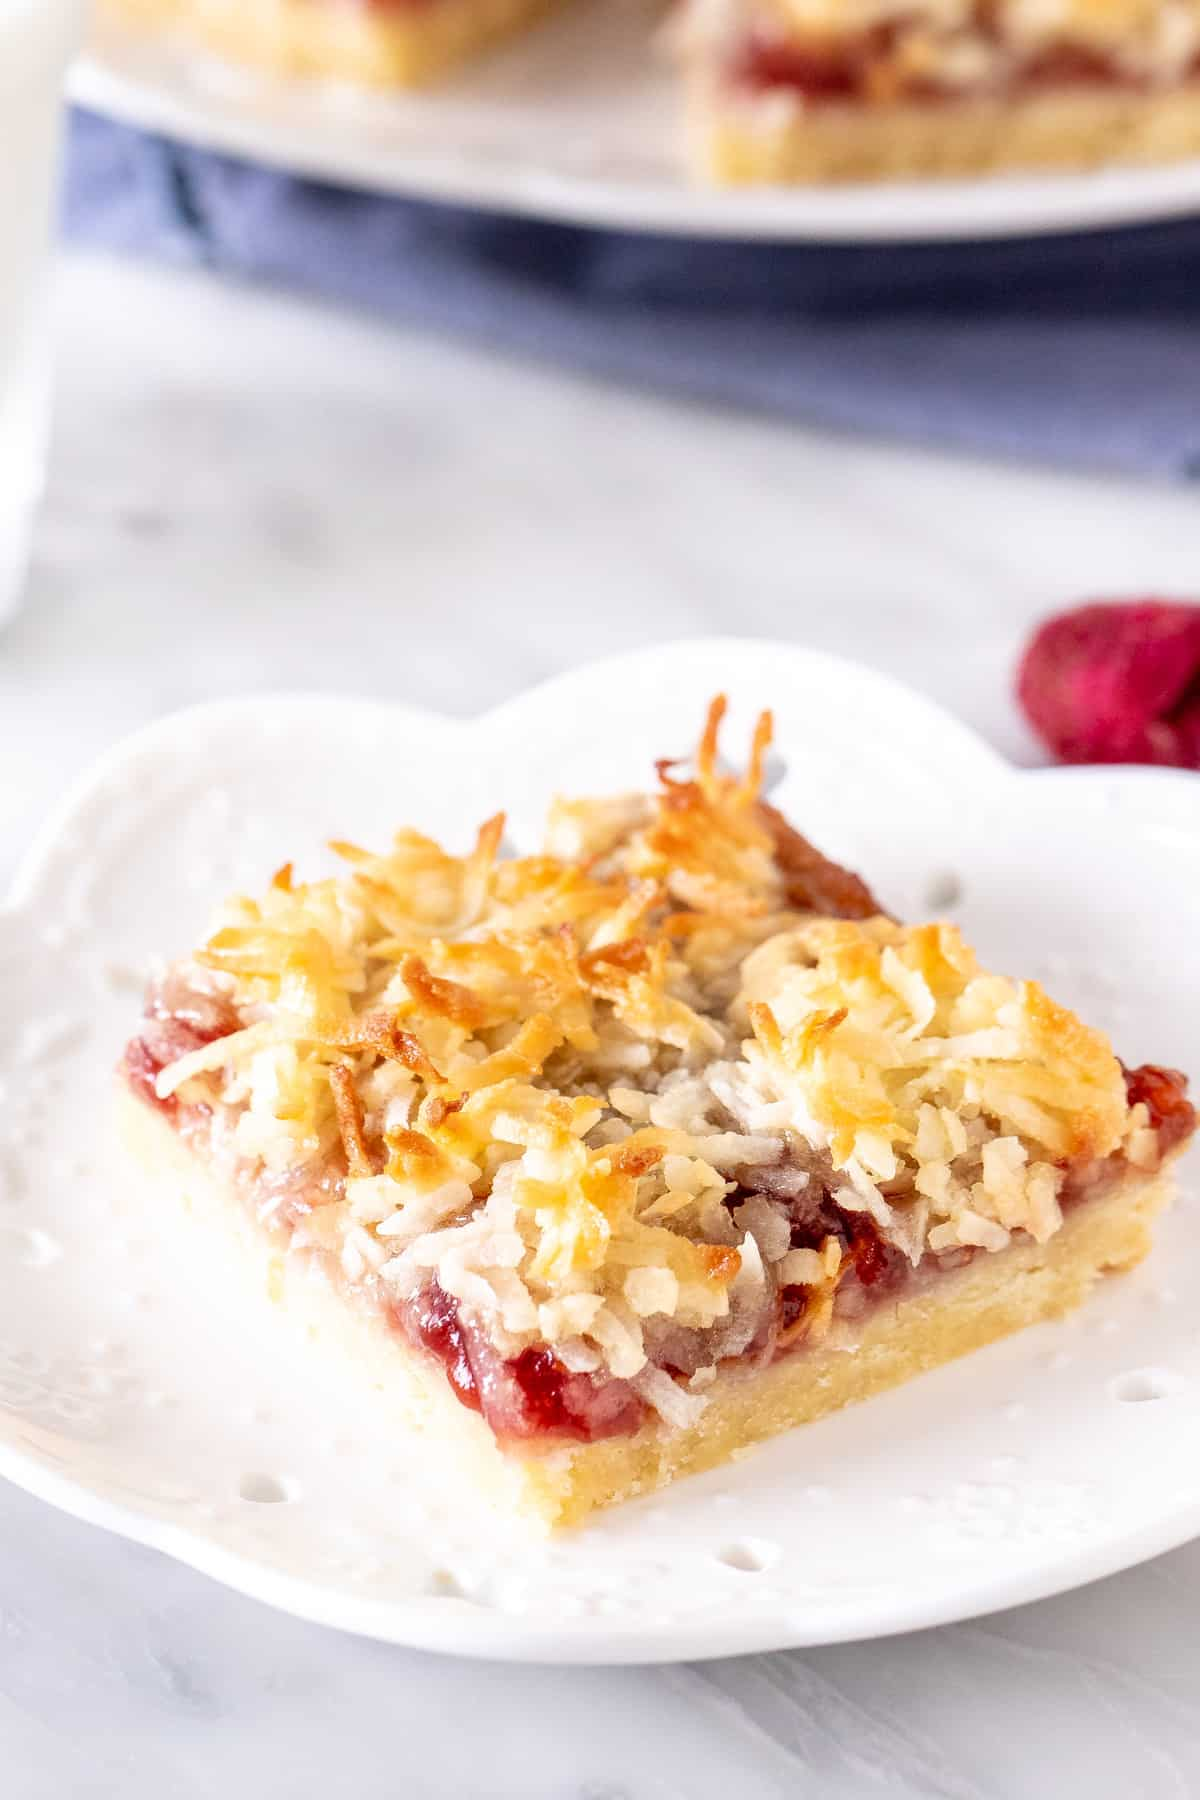 Raspberry coconut slice on a plate.